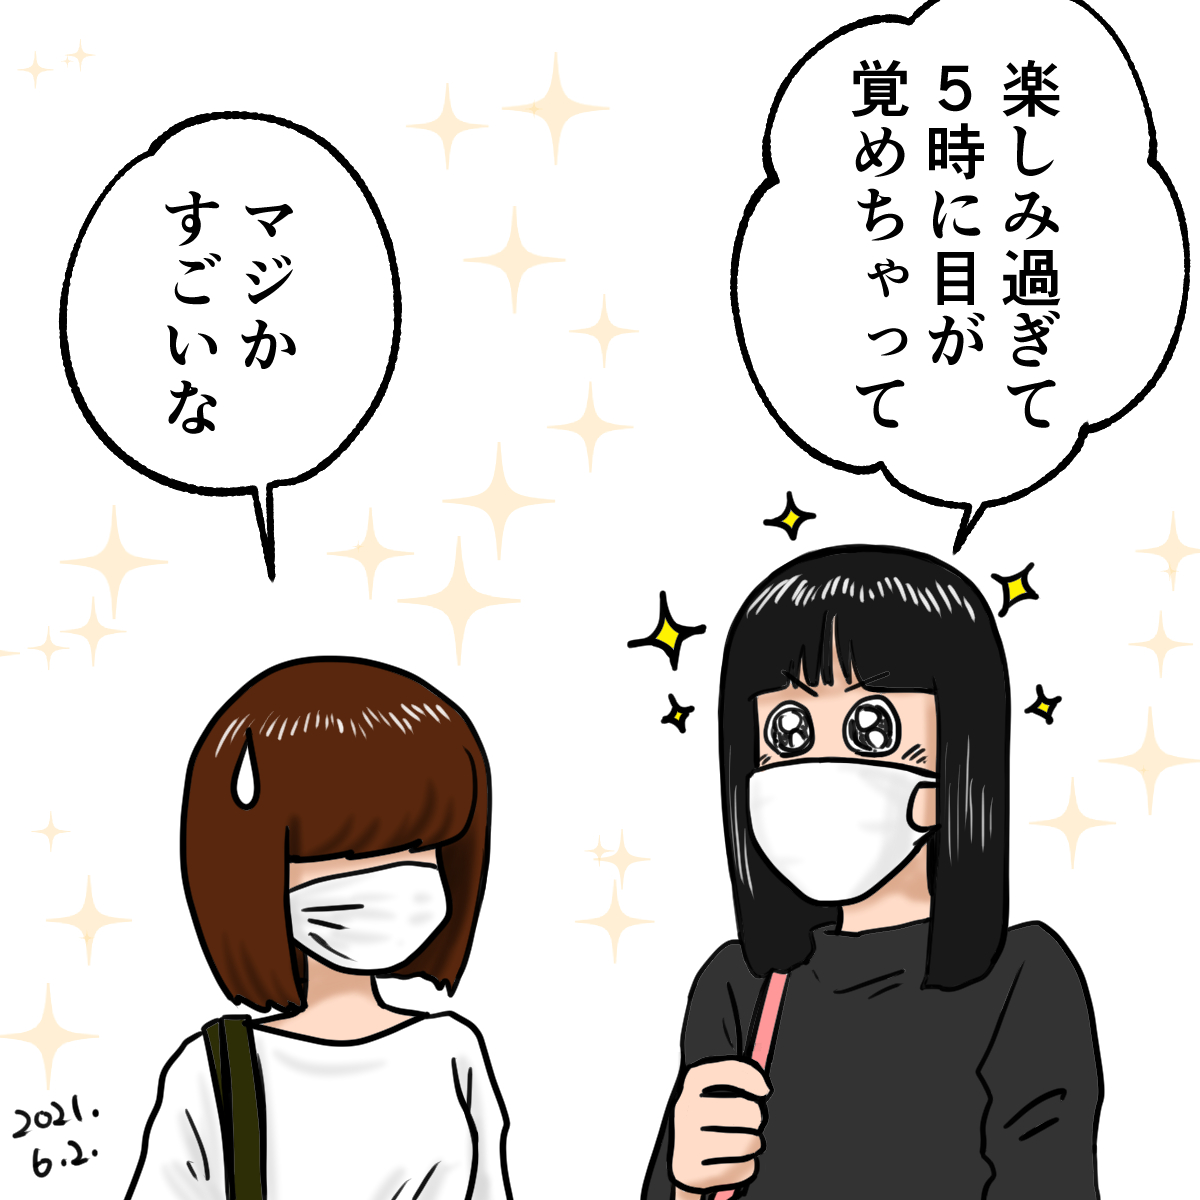 D40A94A6-8508-4488-BF86-404AC255CB62.png